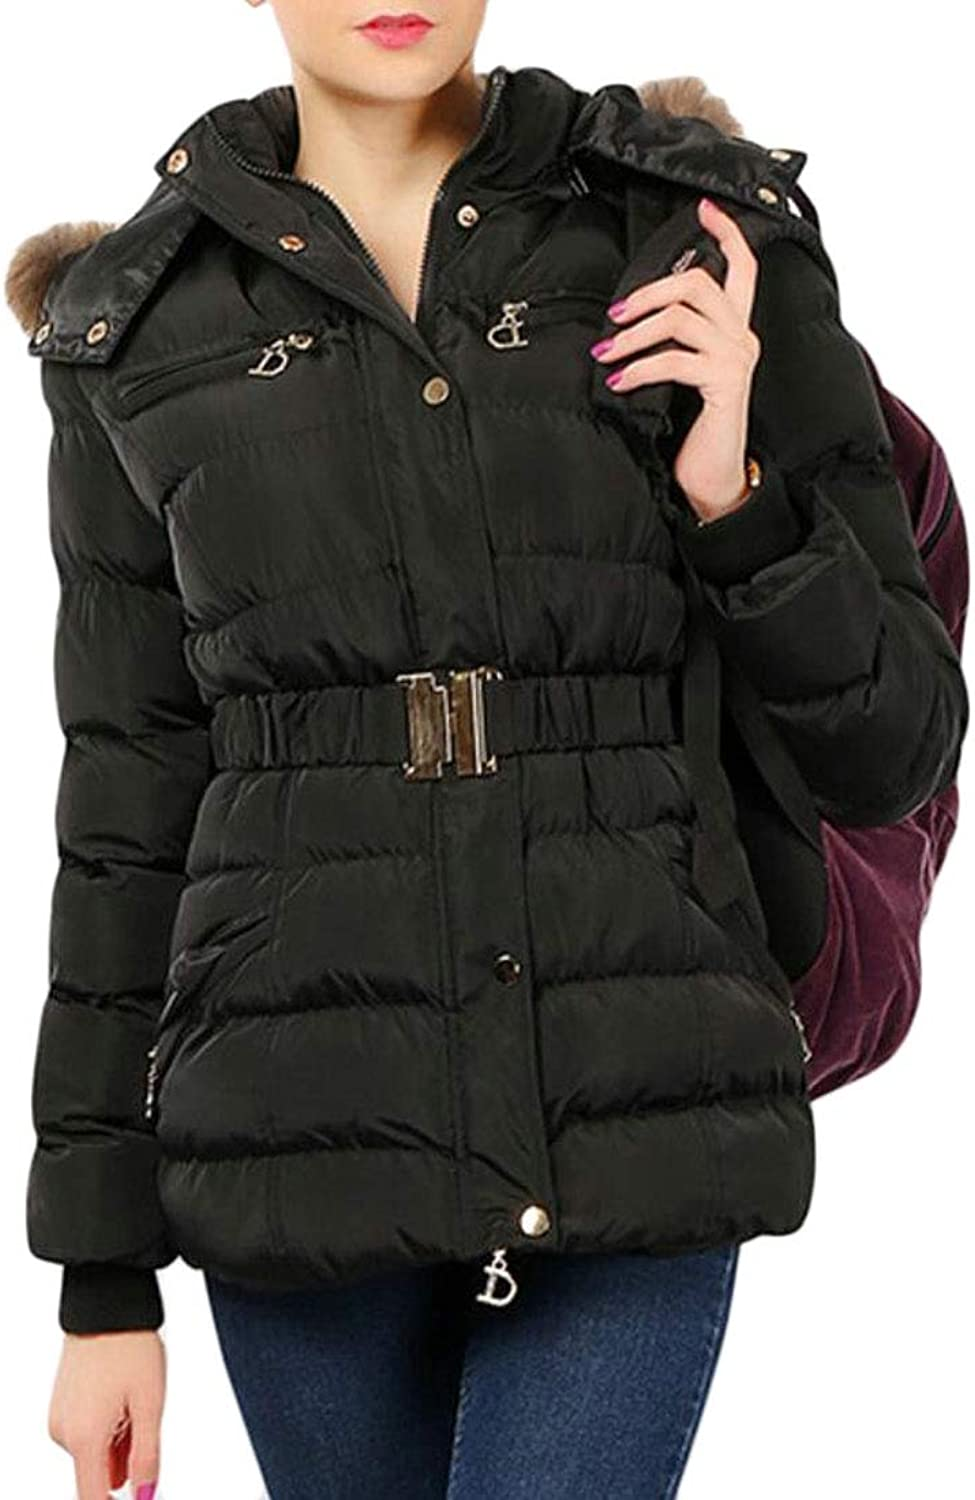 Esast Womens Quilted Coat Faux Fur Collar Hooded Down Jacket Parka Outerwear